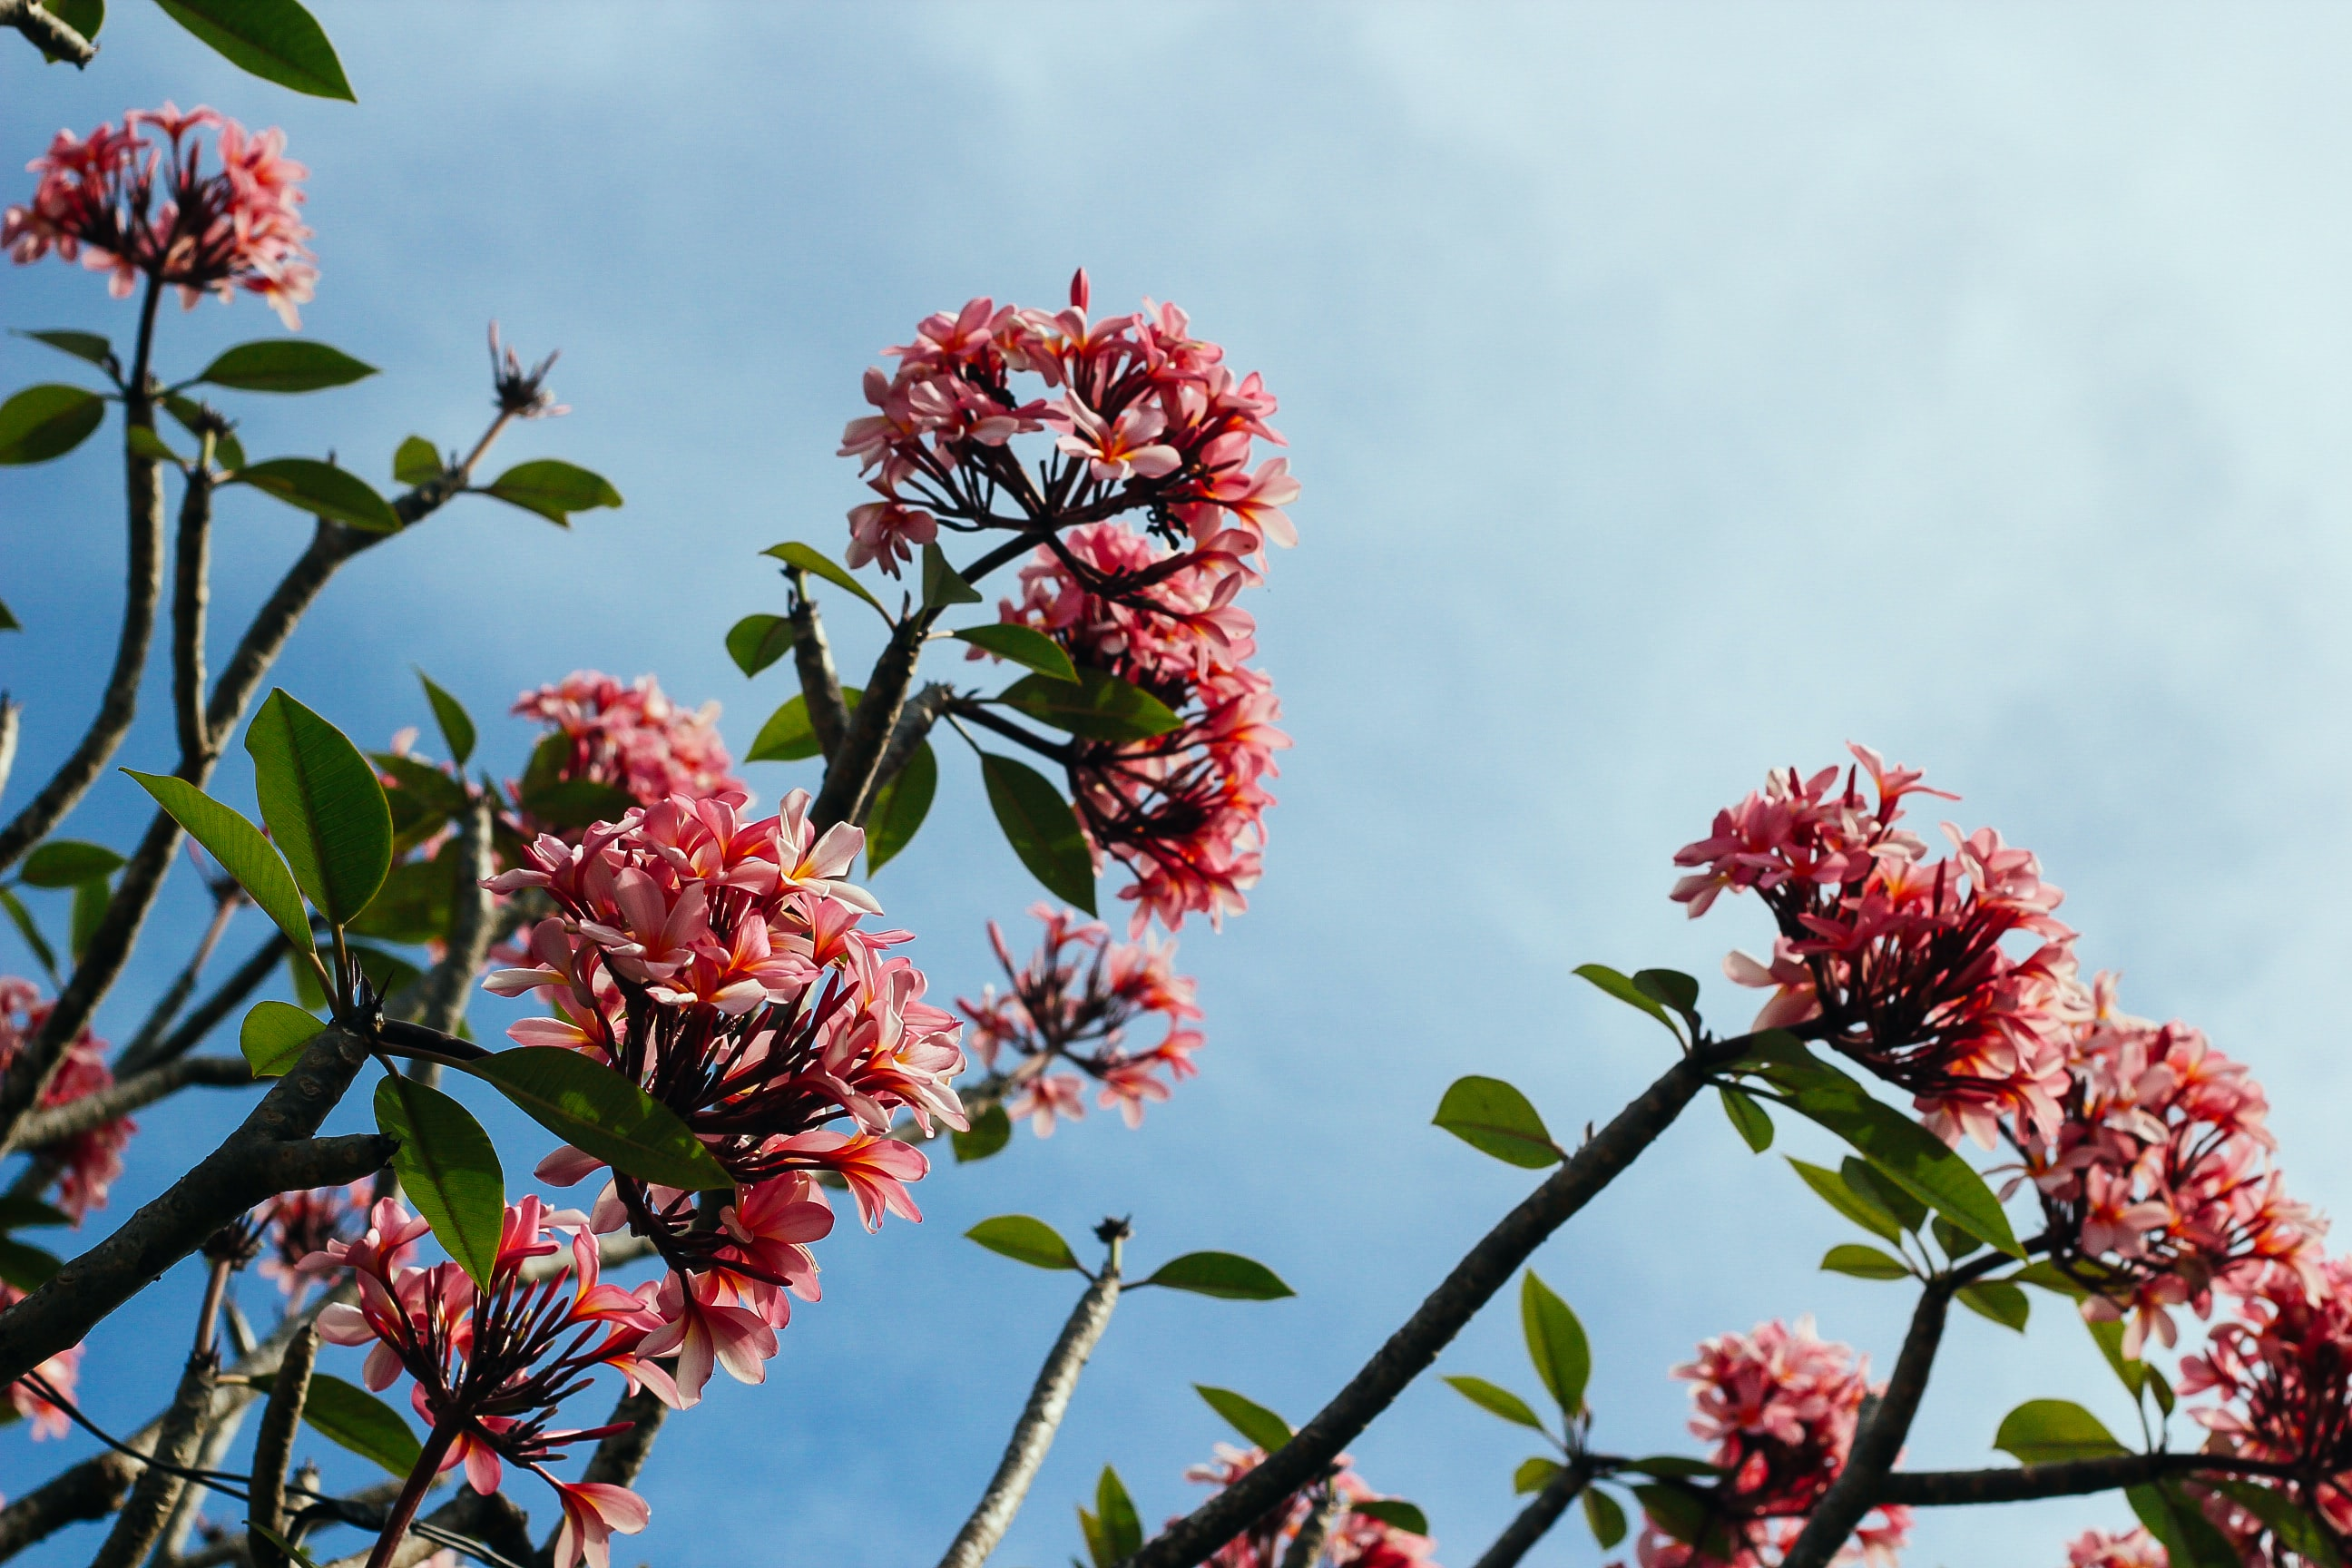 A low-angle shot of light red flowers on top of thick branches against a cloudy sky